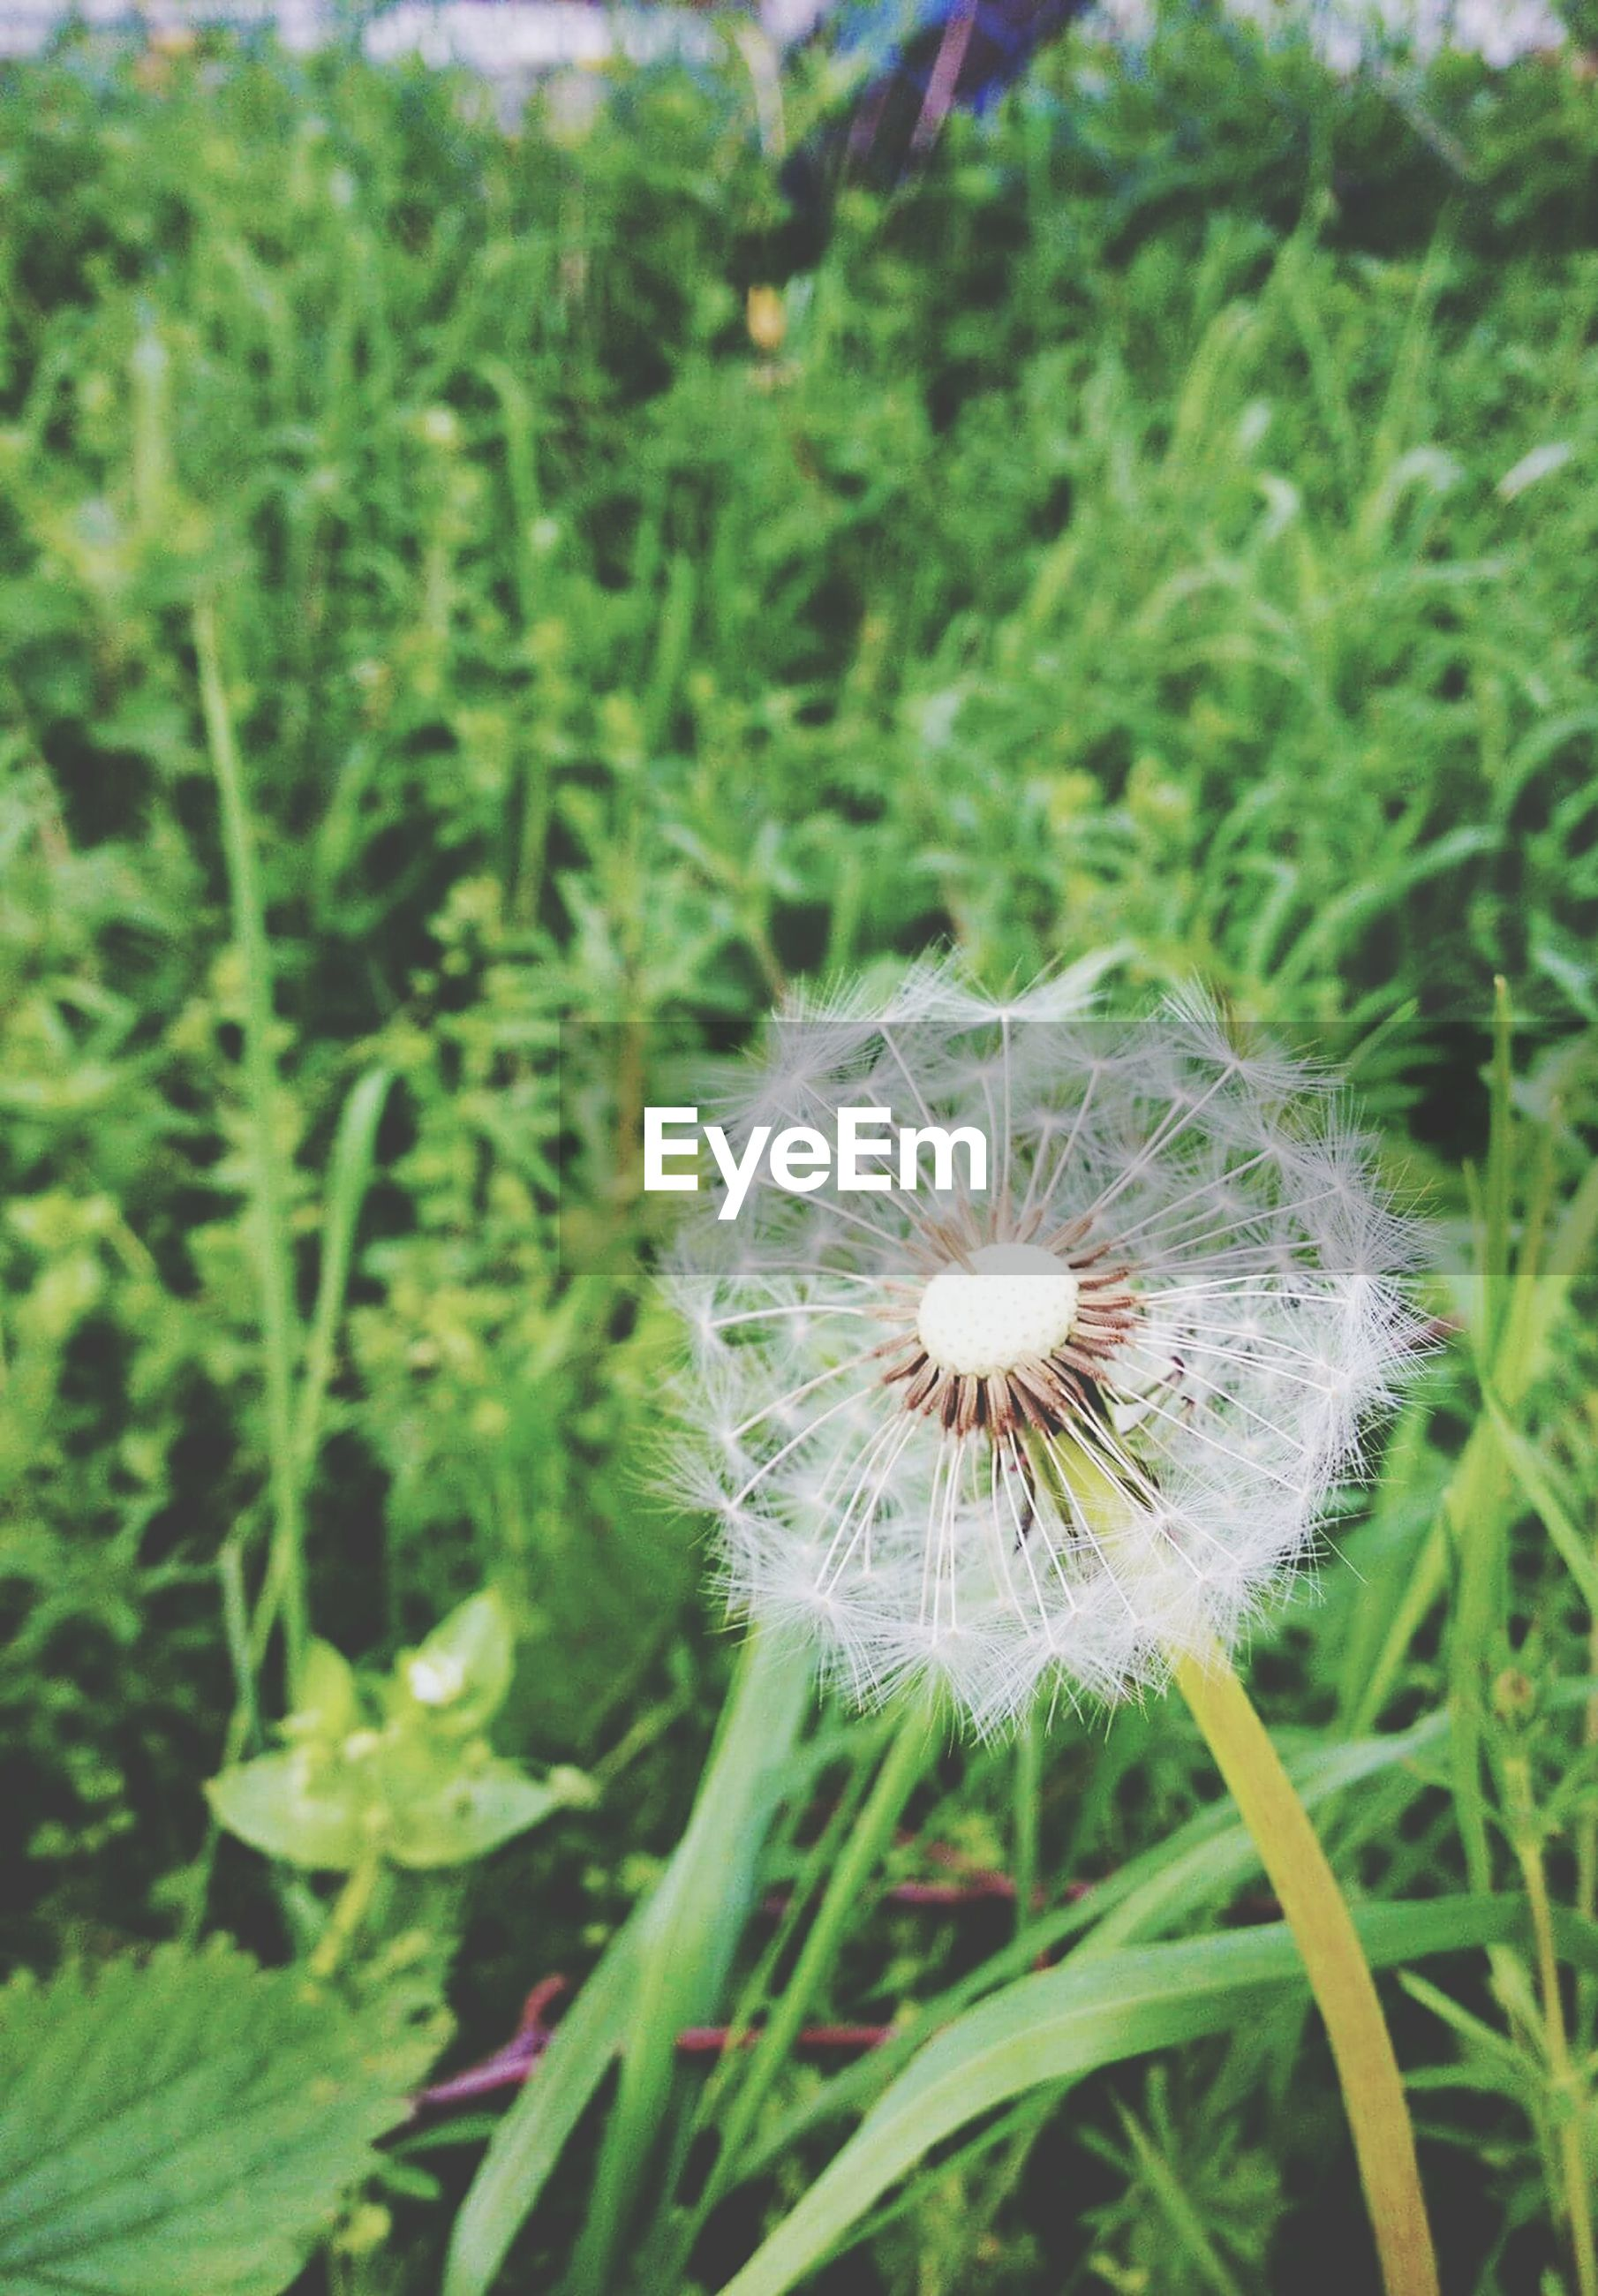 flower, growth, fragility, freshness, white color, plant, dandelion, focus on foreground, beauty in nature, flower head, nature, close-up, field, stem, wildflower, green color, uncultivated, blooming, single flower, petal